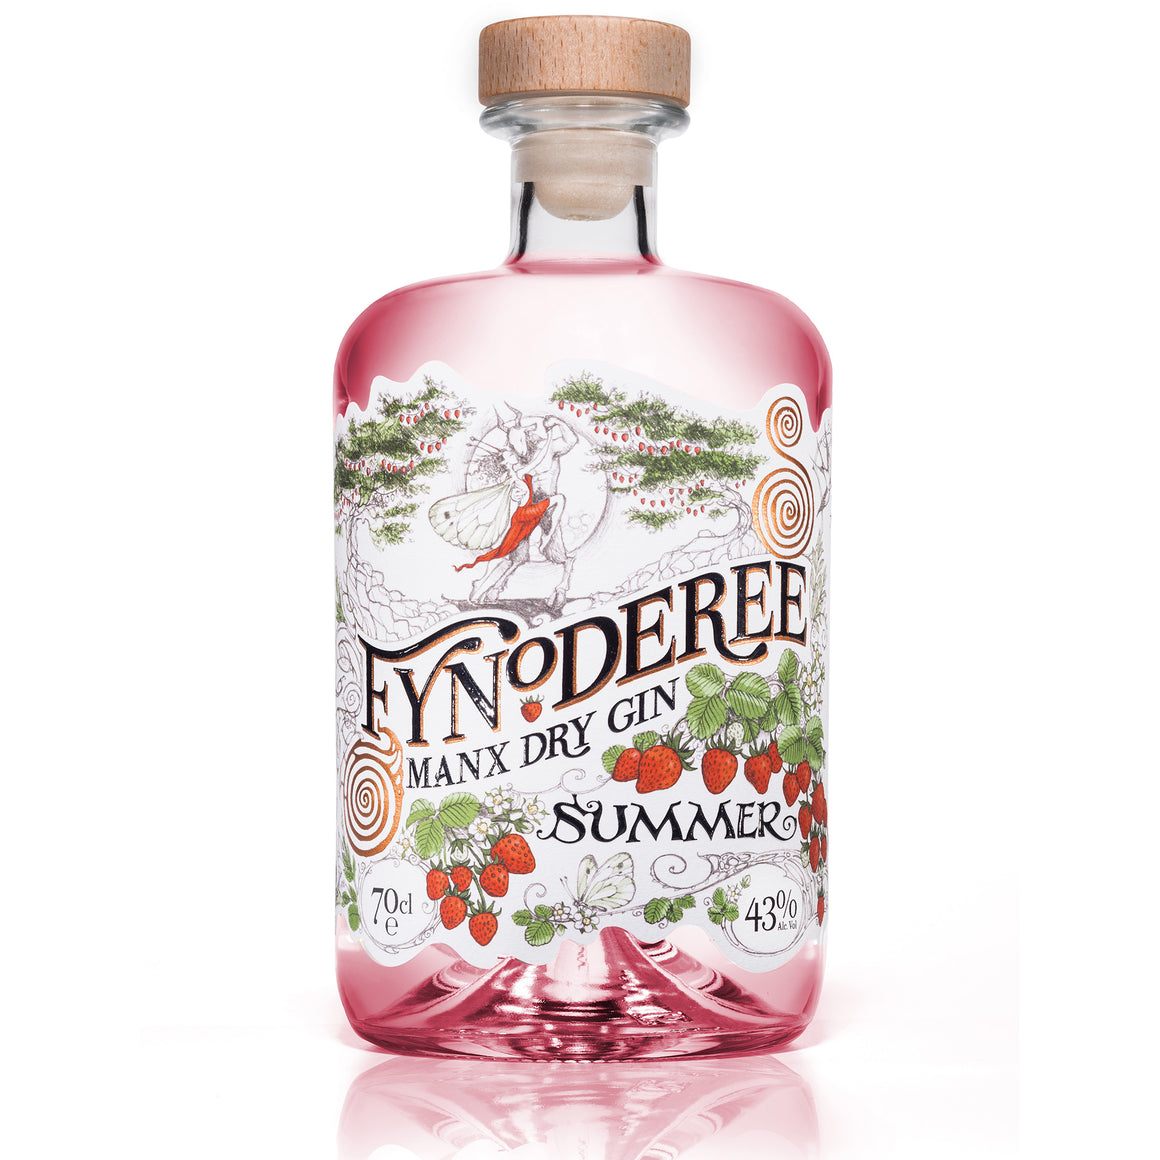 Fynoderee Manx Dry Gin - Pink Edition - PRE-ORDER NOW!